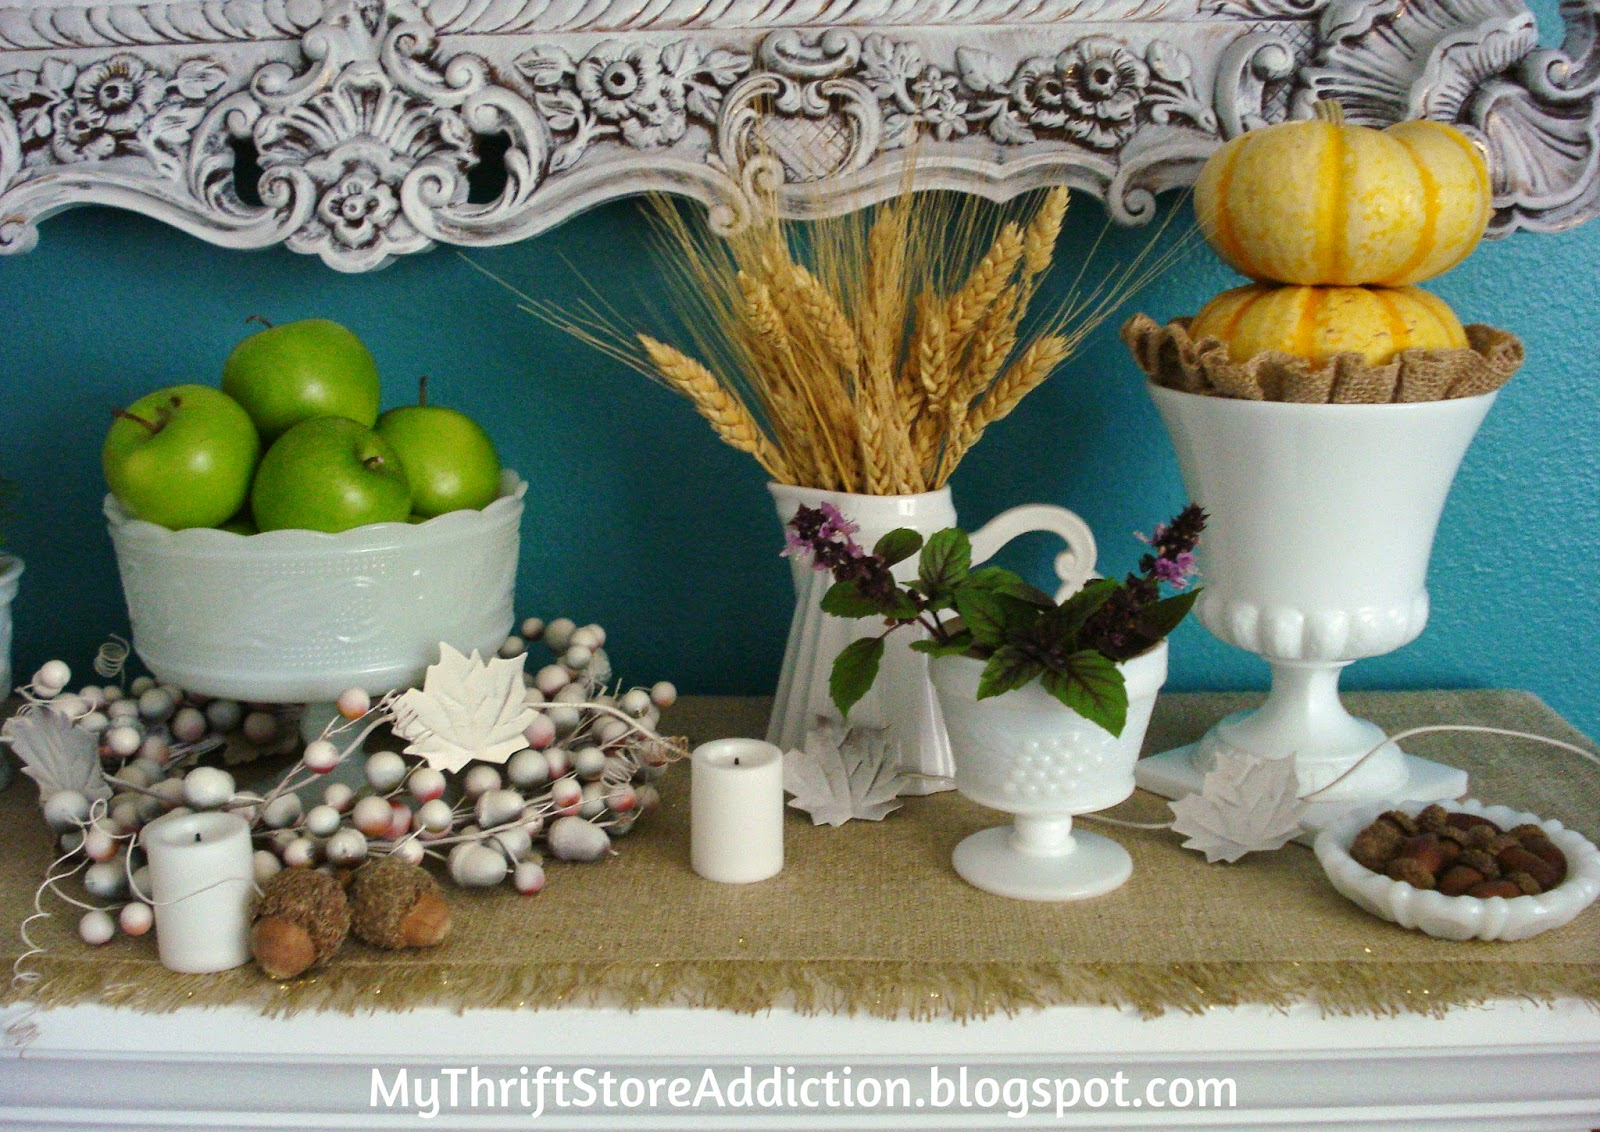 Autumn Harvest Botanical Mantel mythriftstoreaddiction.blogspot.com Grocery store produce like green apples, wheat and mini pumpkins can create a beautiful fall mantel and save money